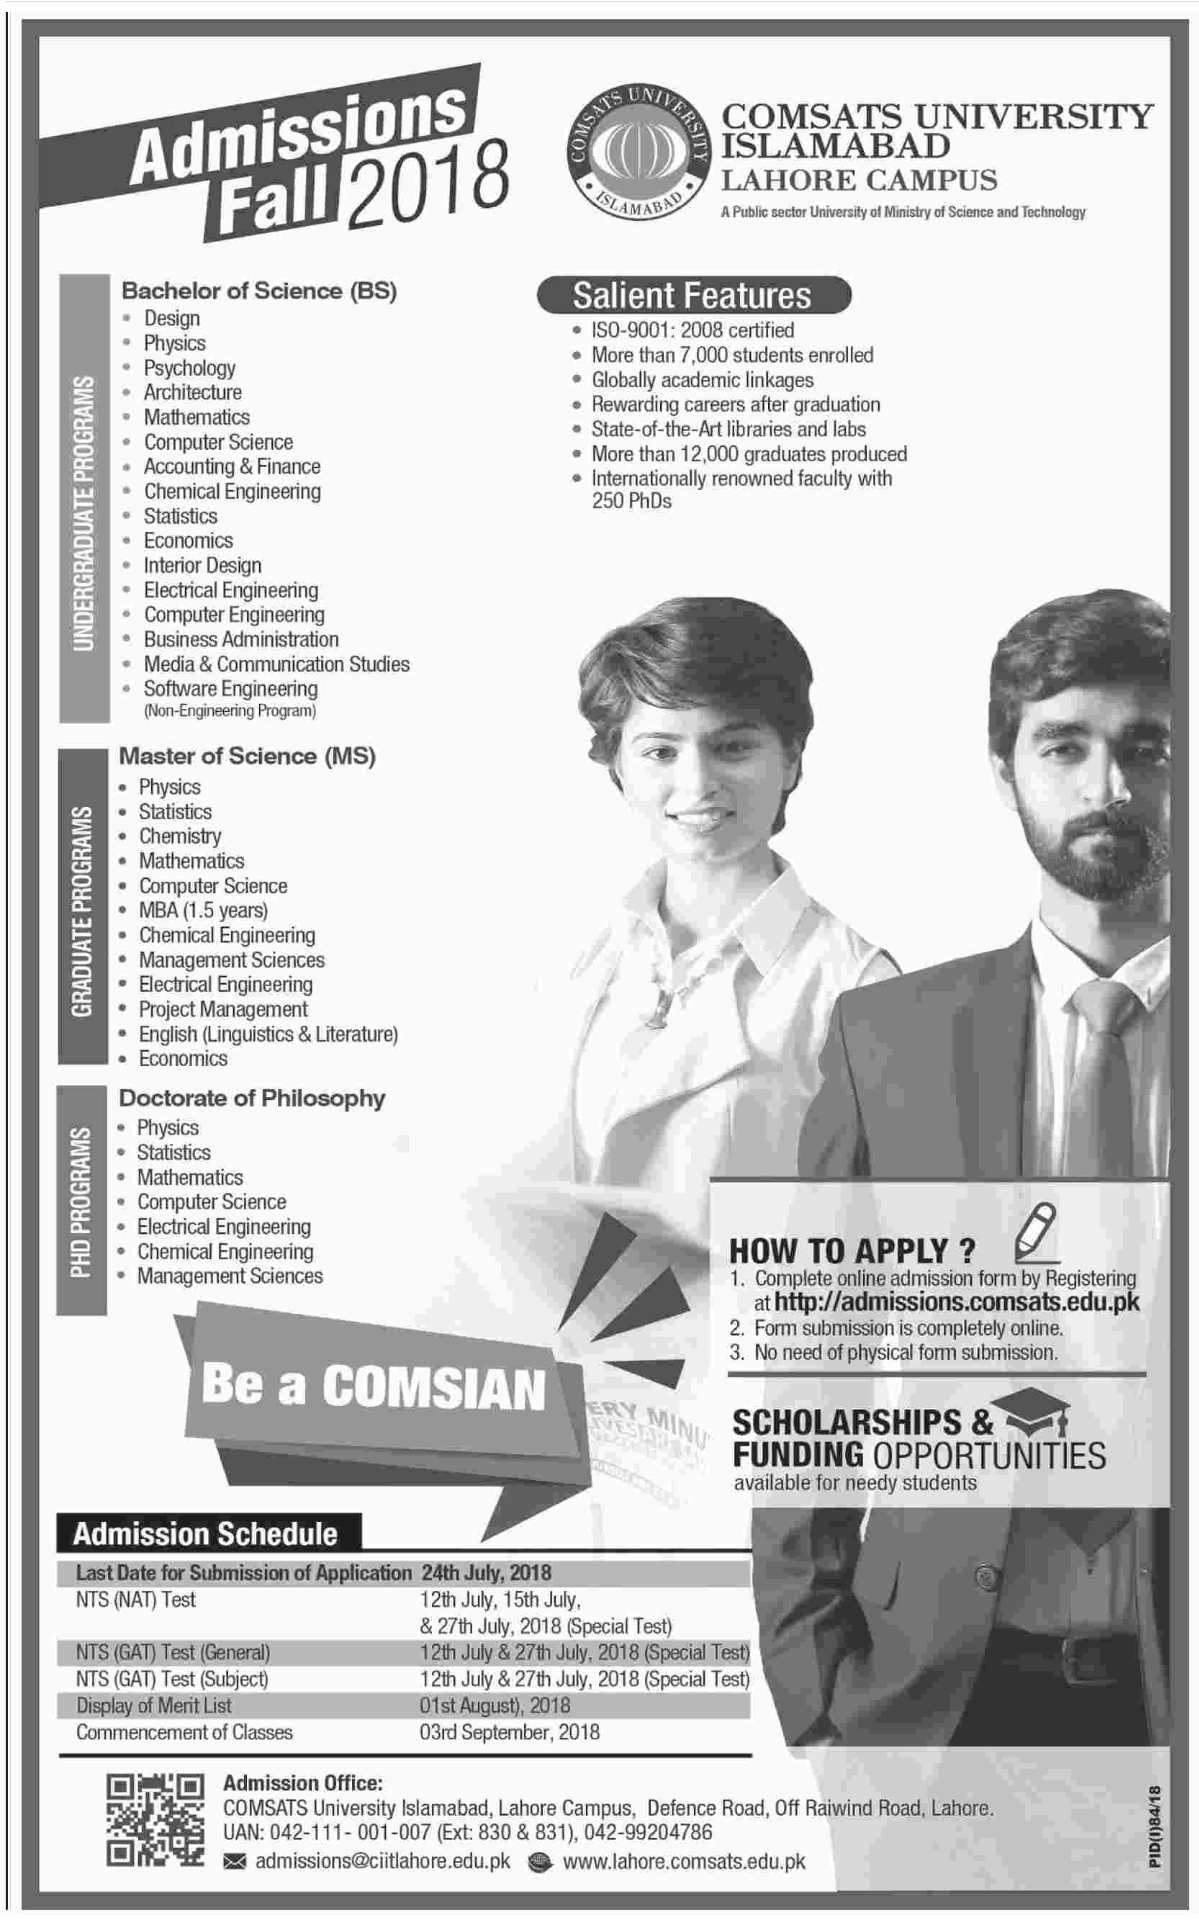 Revised Schedule of COMSATS Lahore Campus Admissions 2018 - STEP